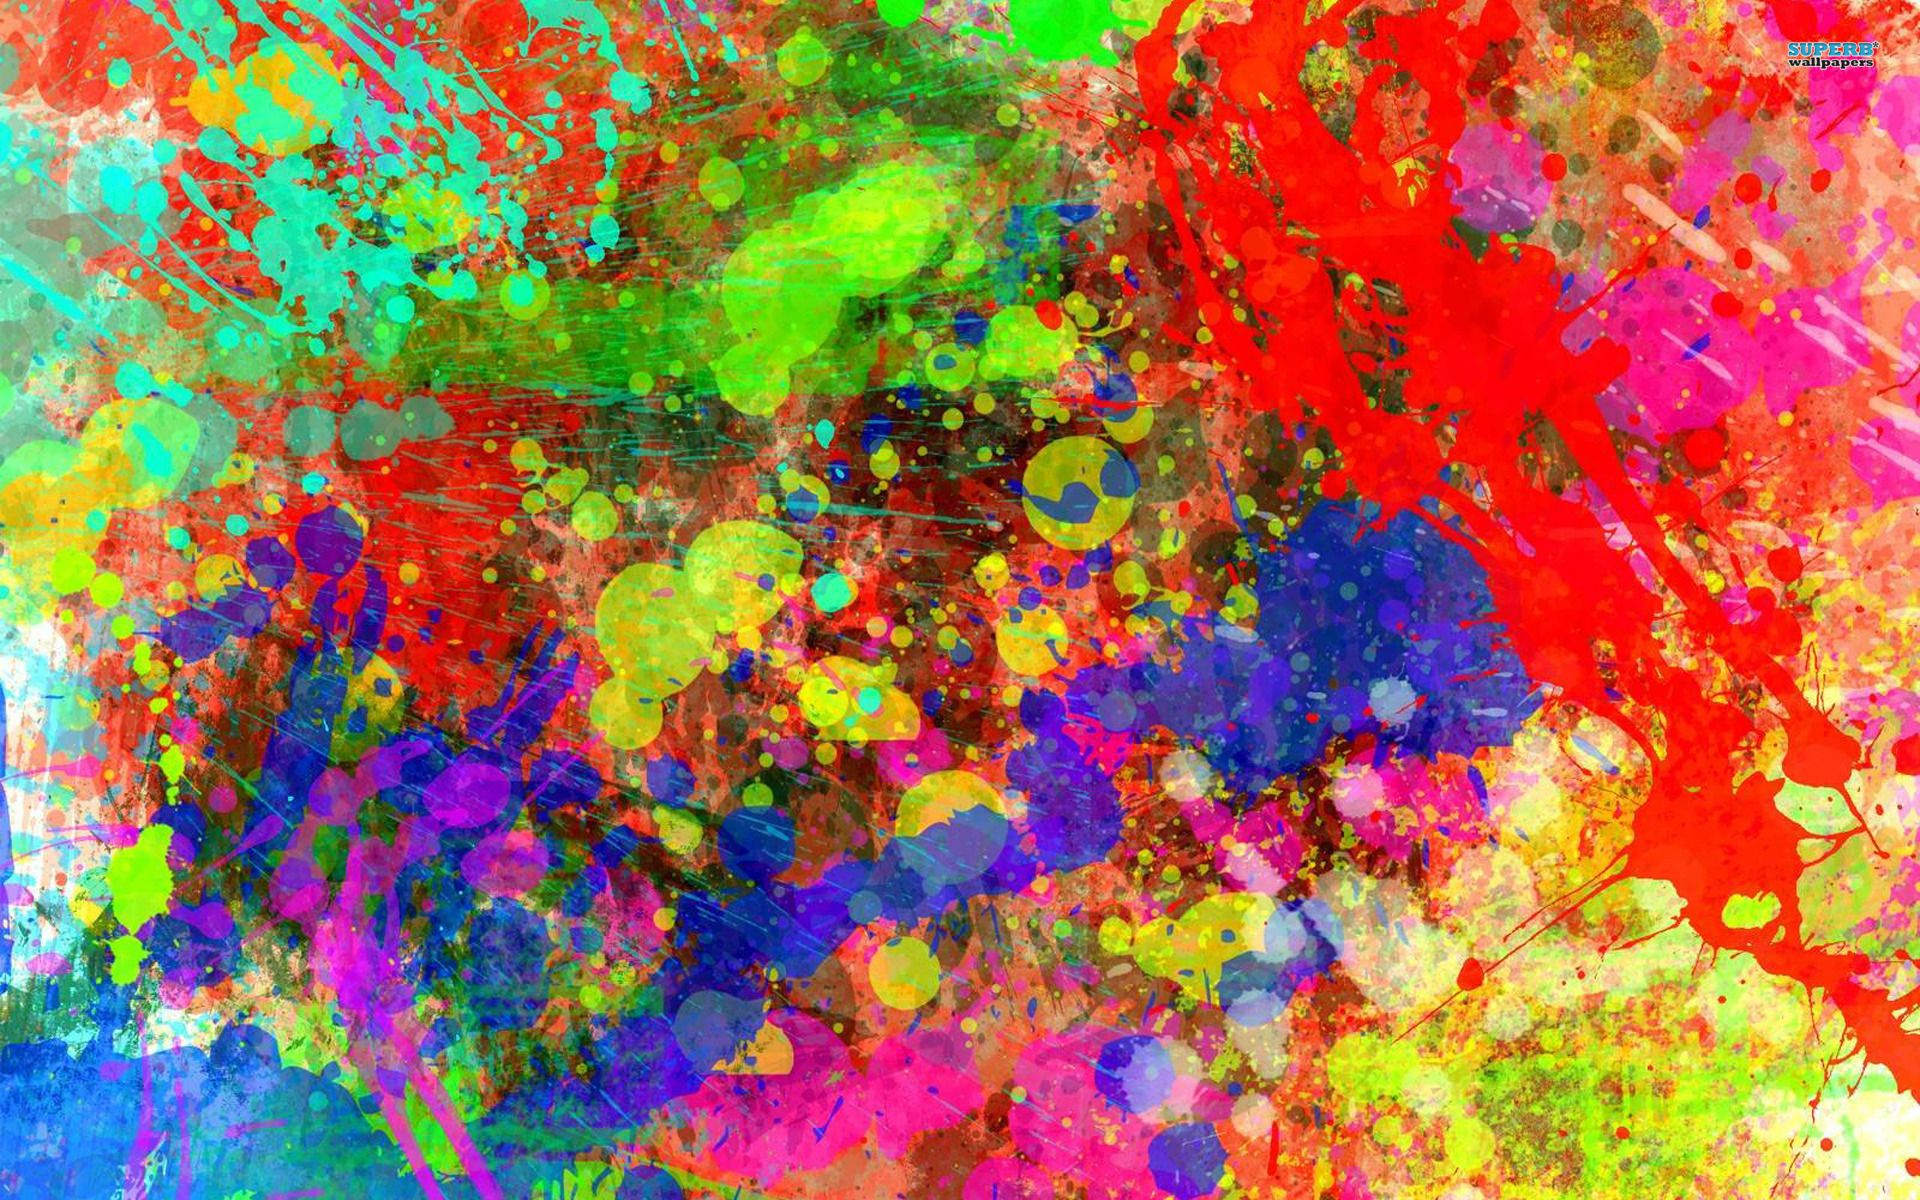 Pin By Elena Root On Paint Splatter Posters Art Prints Painting Rainbow Wallpaper